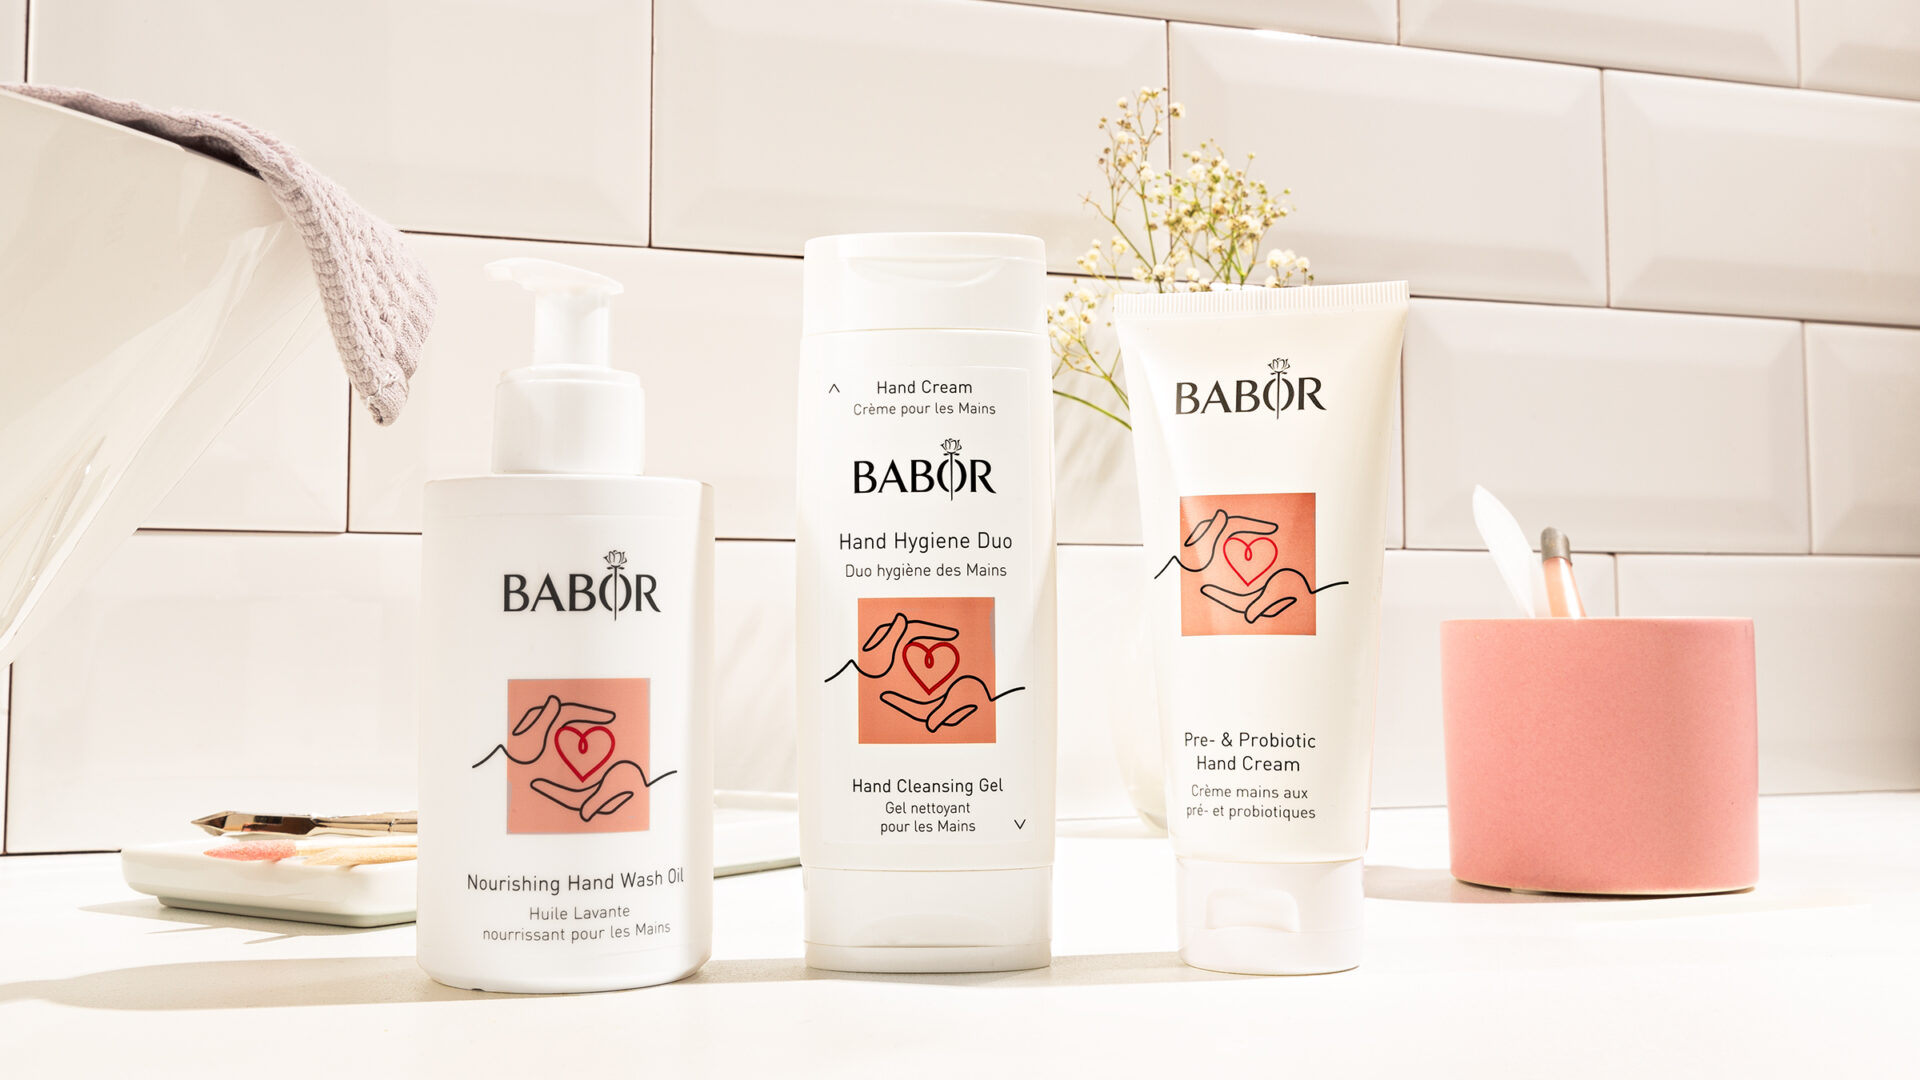 BABOR_NOURISHING_HAND_WASH_OIL_HAND_CLEANSING_GEL_PRE_PROBIOTIC_CREAM_BeautysalonPure